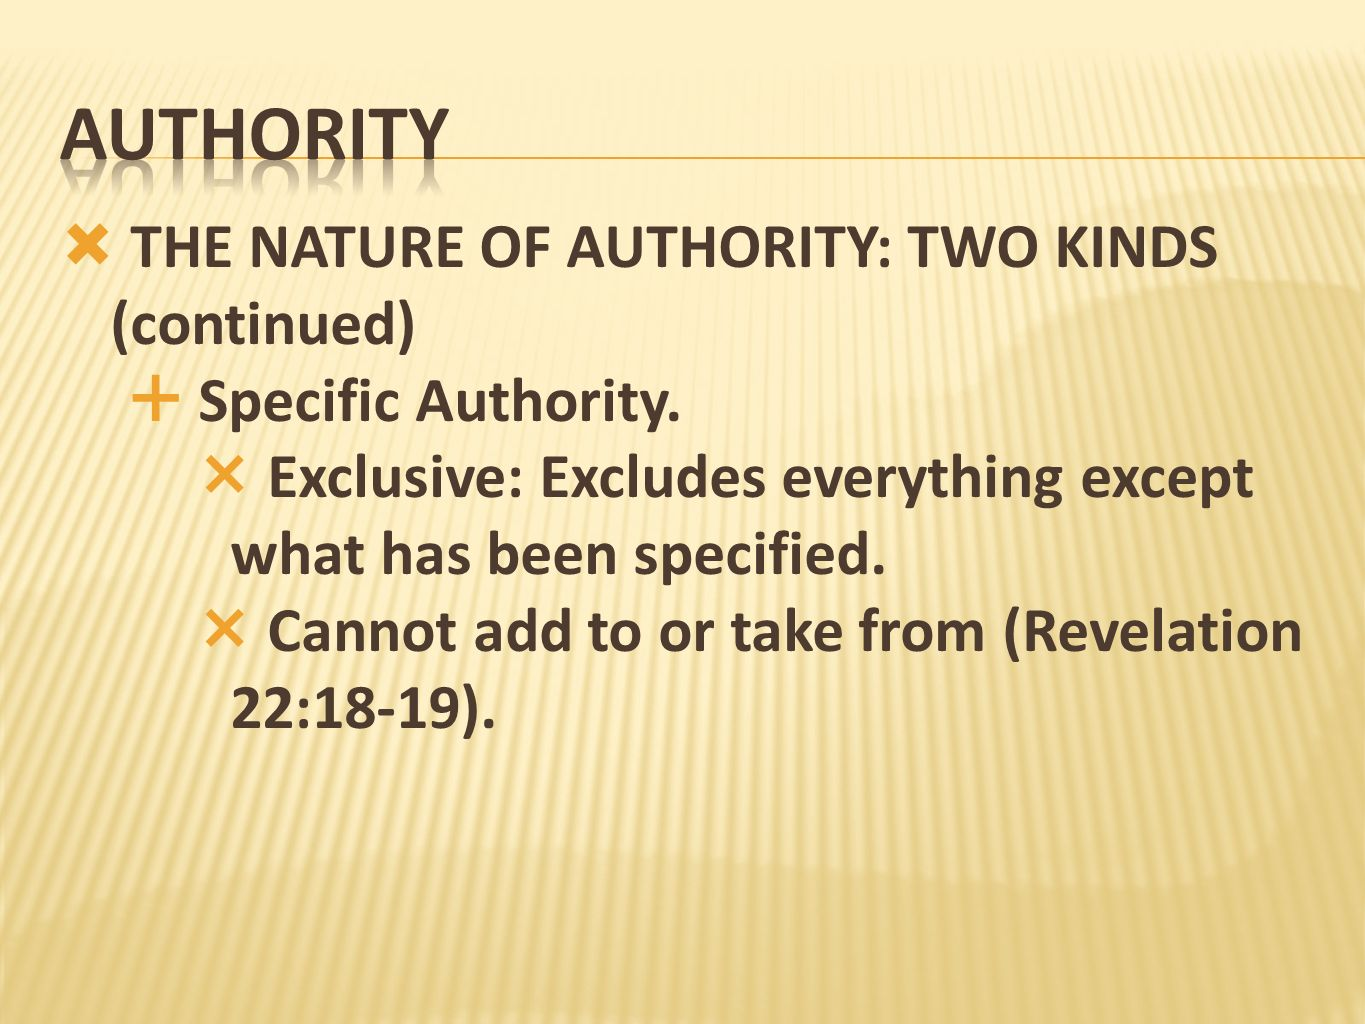 authority THE NATURE OF AUTHORITY: TWO KINDS (continued)